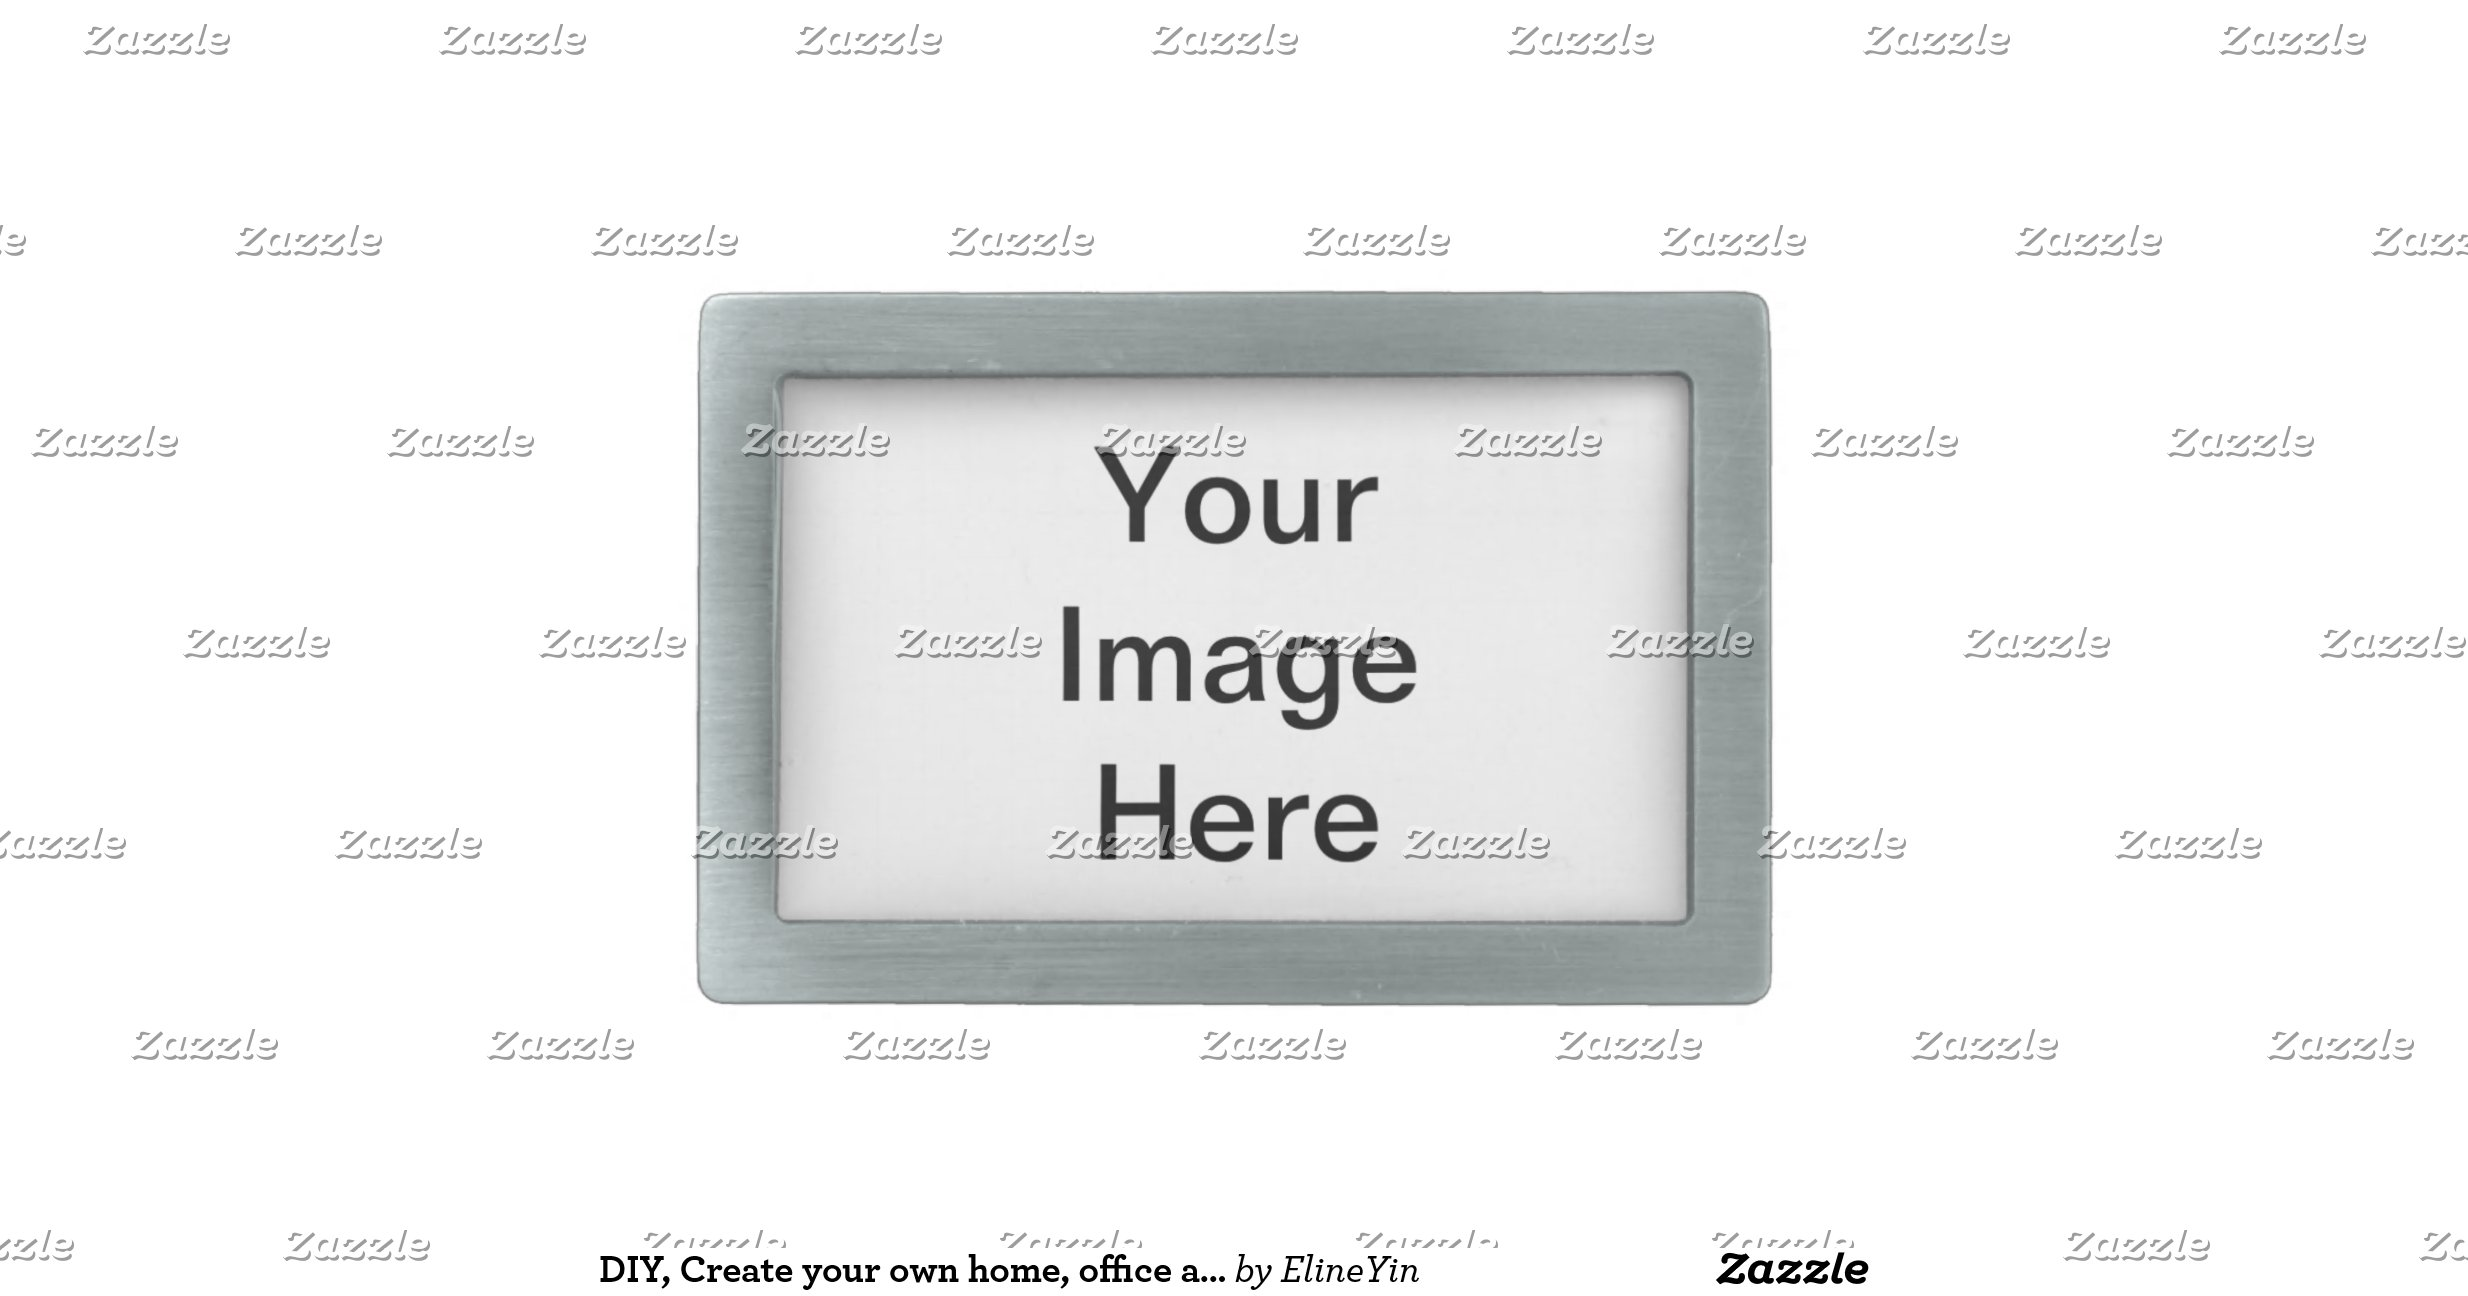 Diy Create Your Own Home Office And Business Zazzle